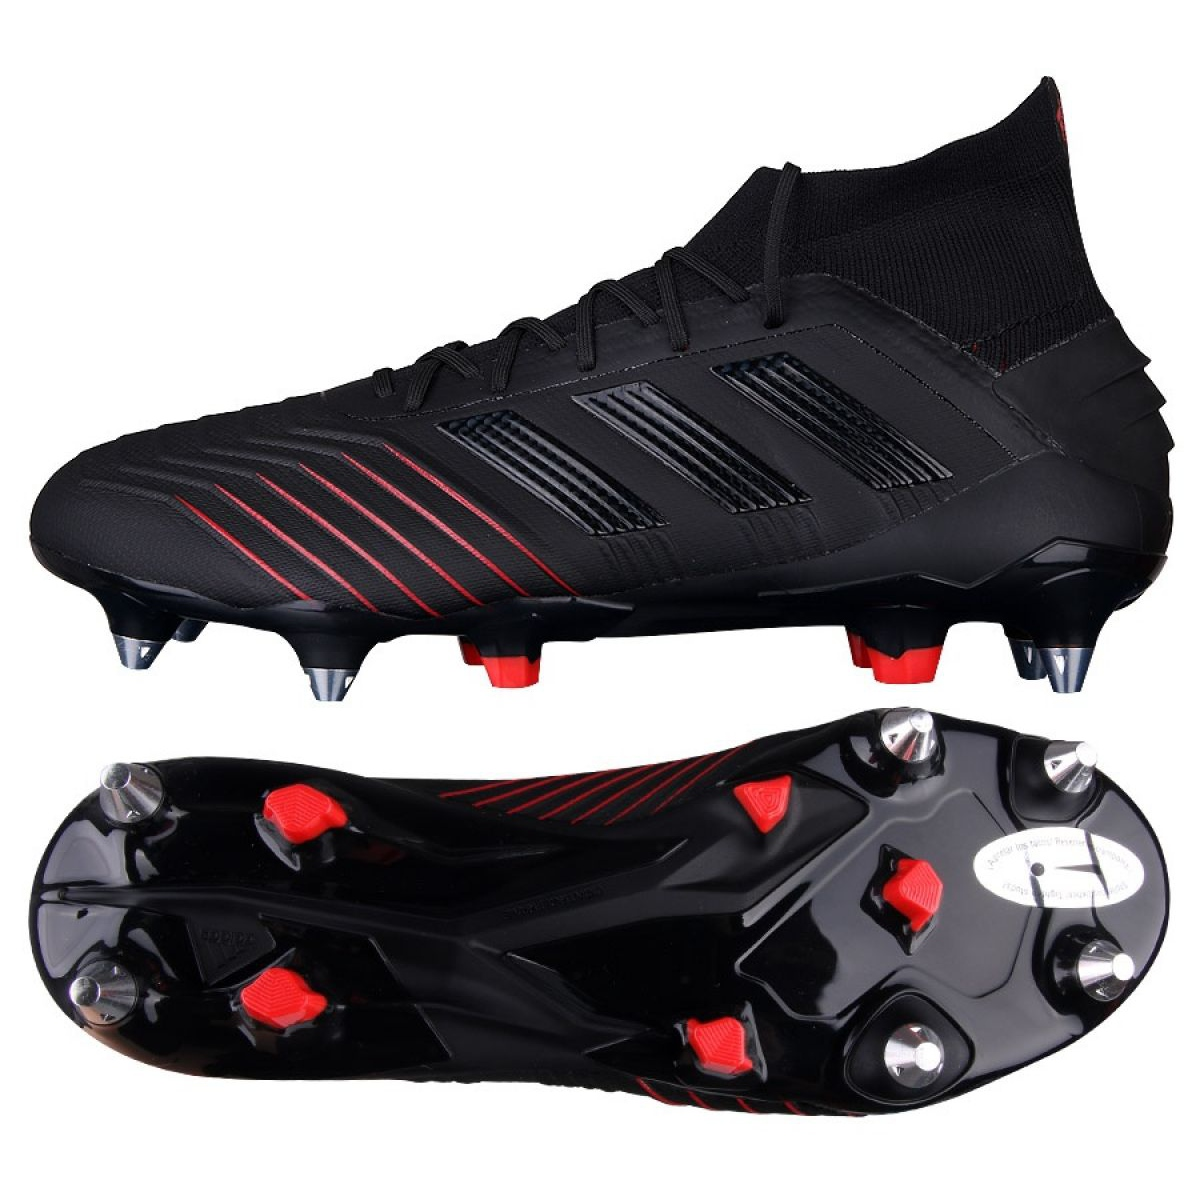 Details about Football boots adidas Predator 19.1 Sg M G26979